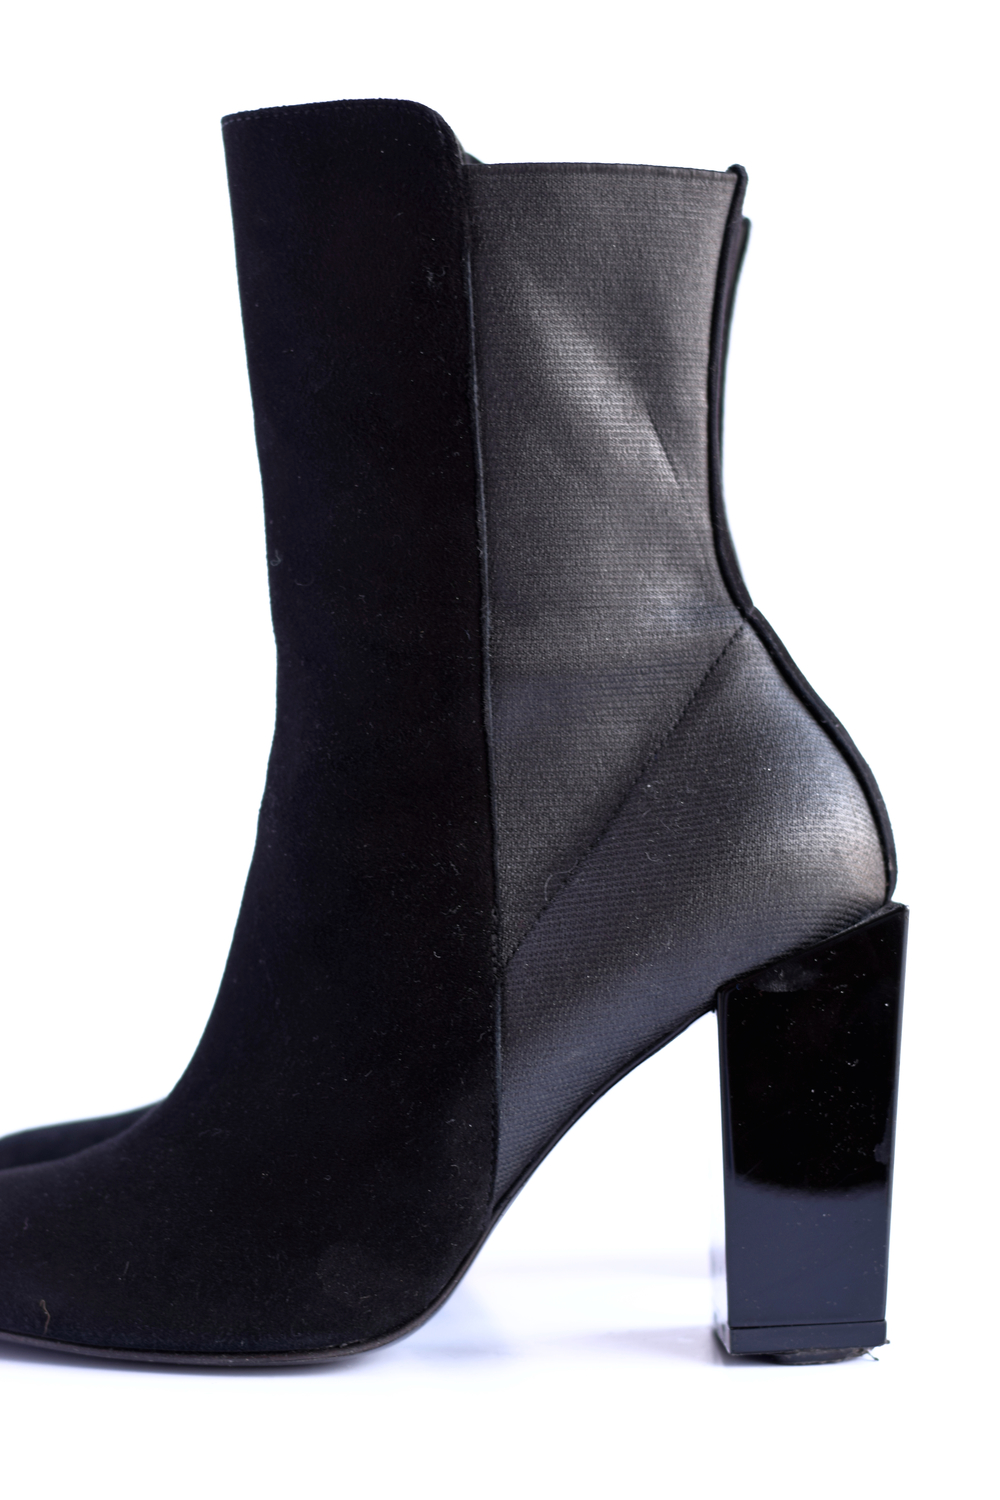 short black heeled boots